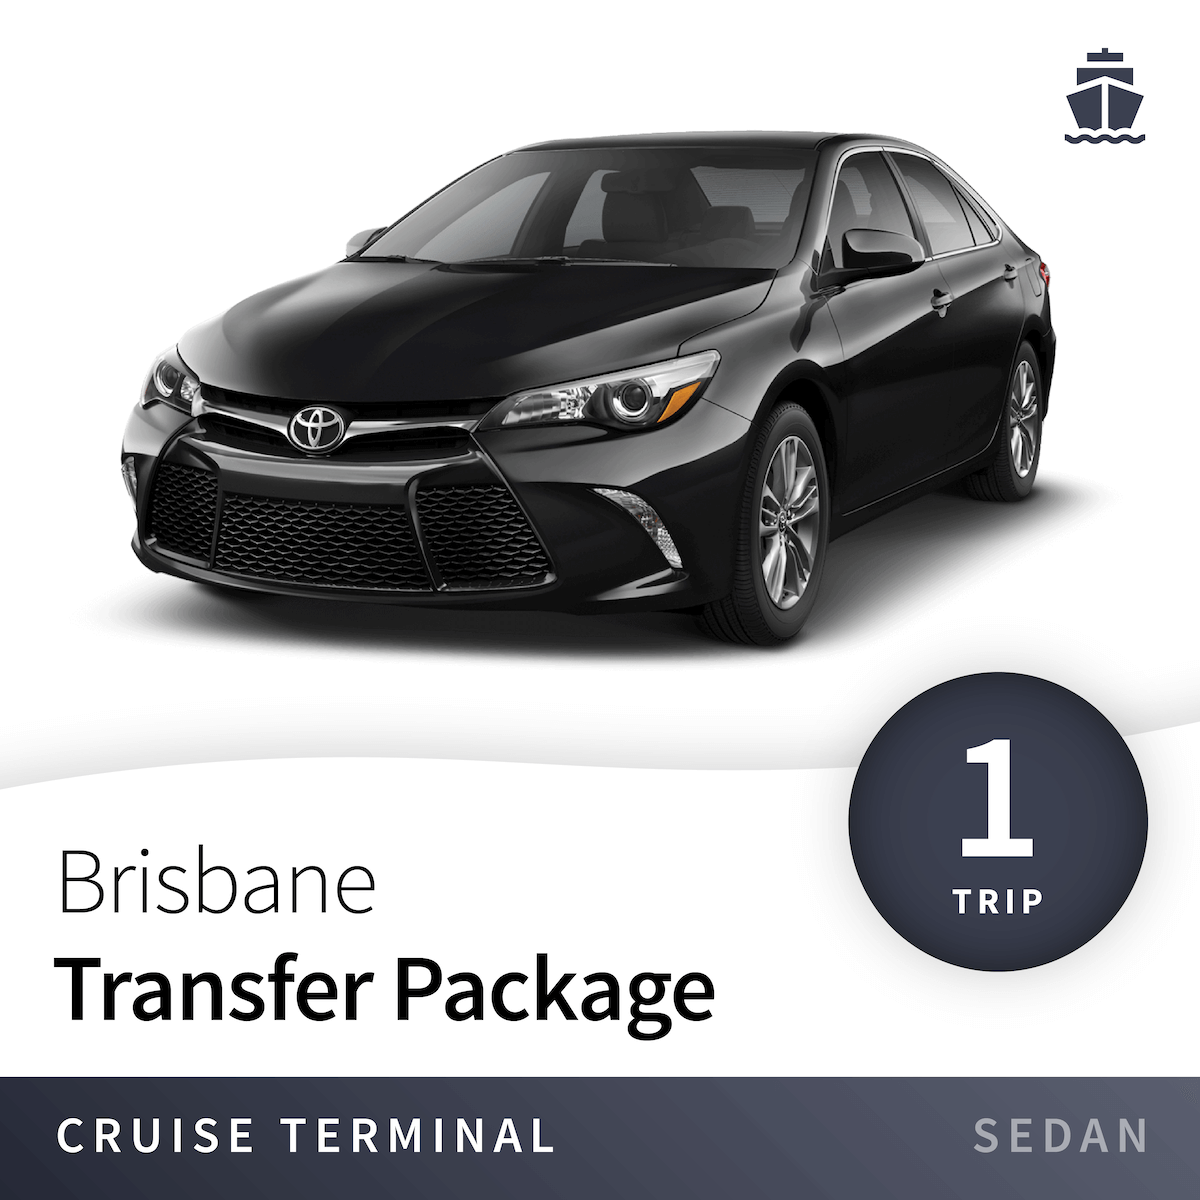 Brisbane Cruise Terminal Transfer Package - Sedan (1 Trip) 12